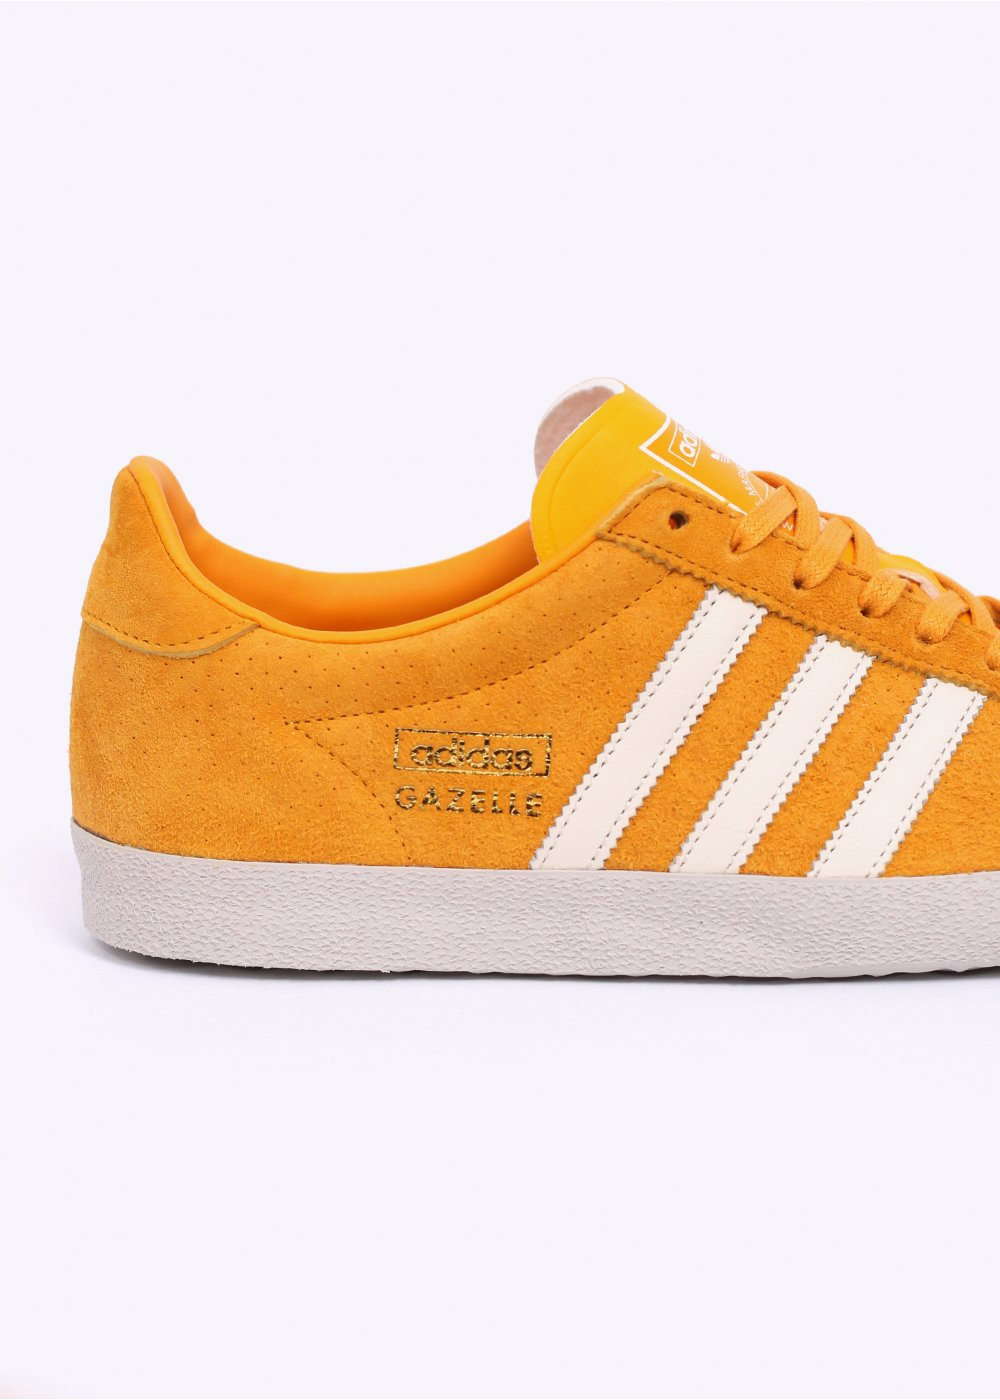 Adidas Originals Orange Trainers